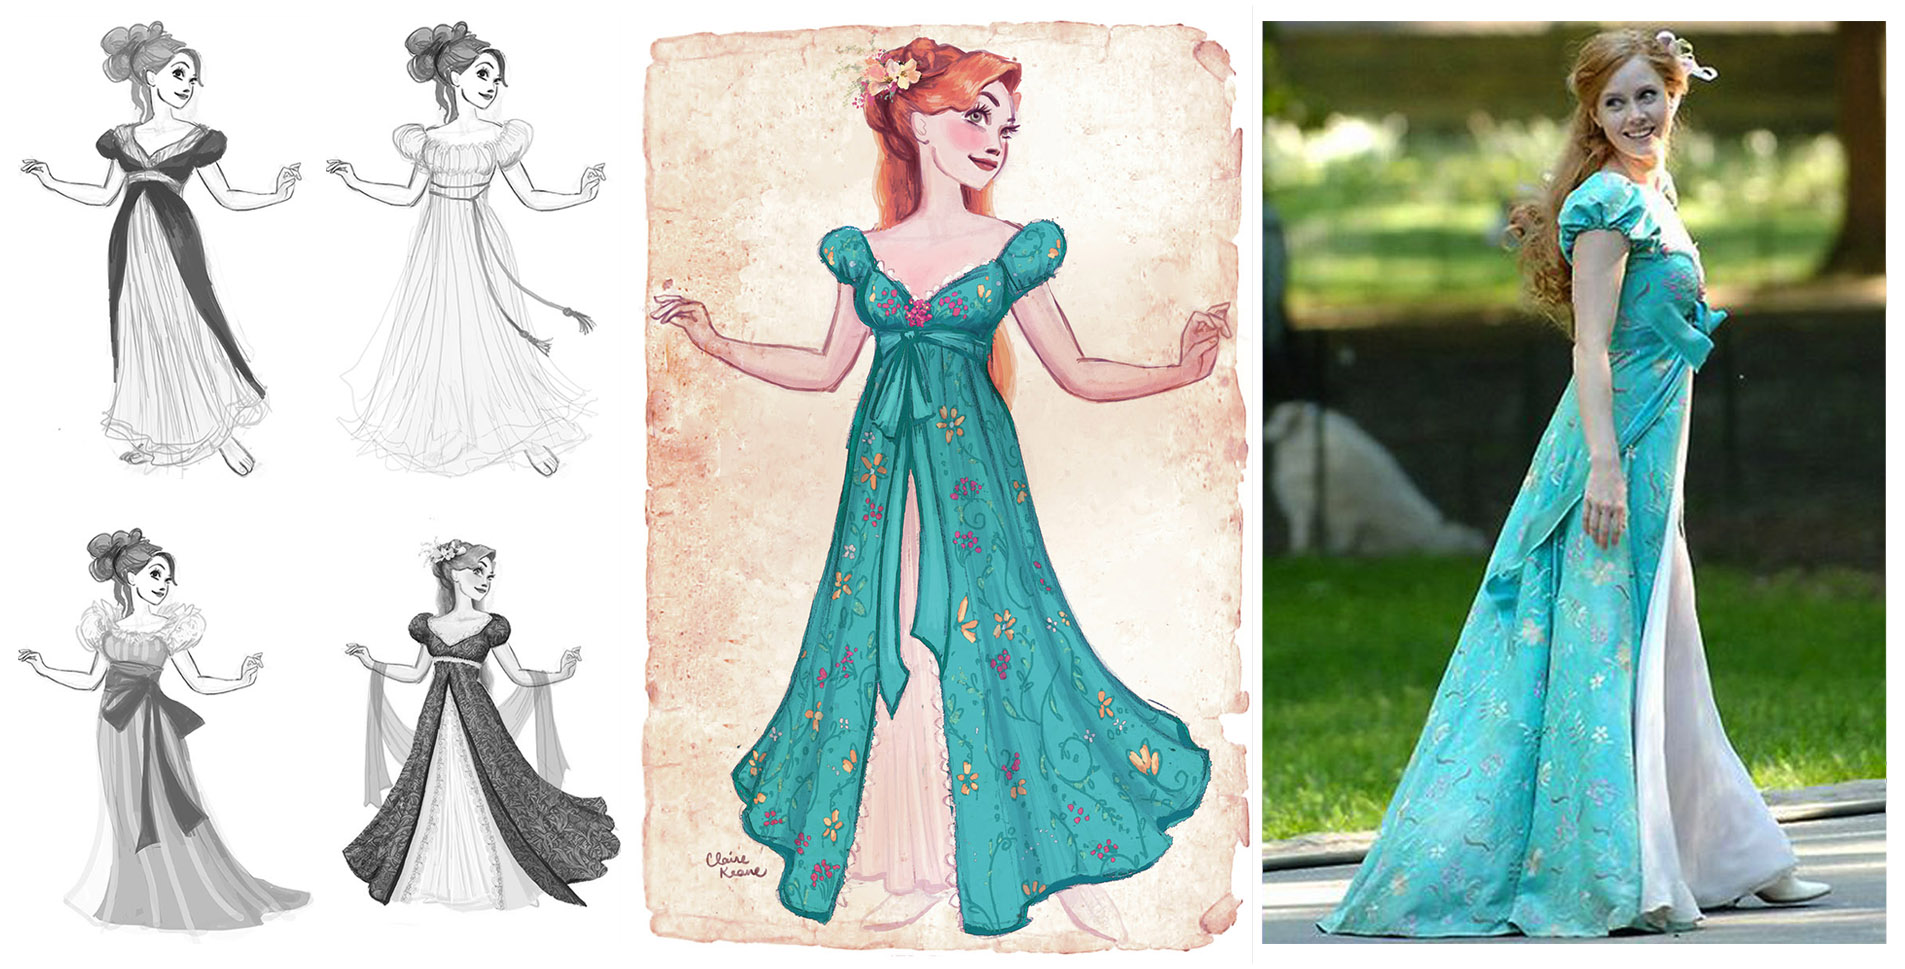 GISELLE COSTUME DESIGN / AMY ADAMS //VISUAL DEVELOPMENT FOR ENCHANTED